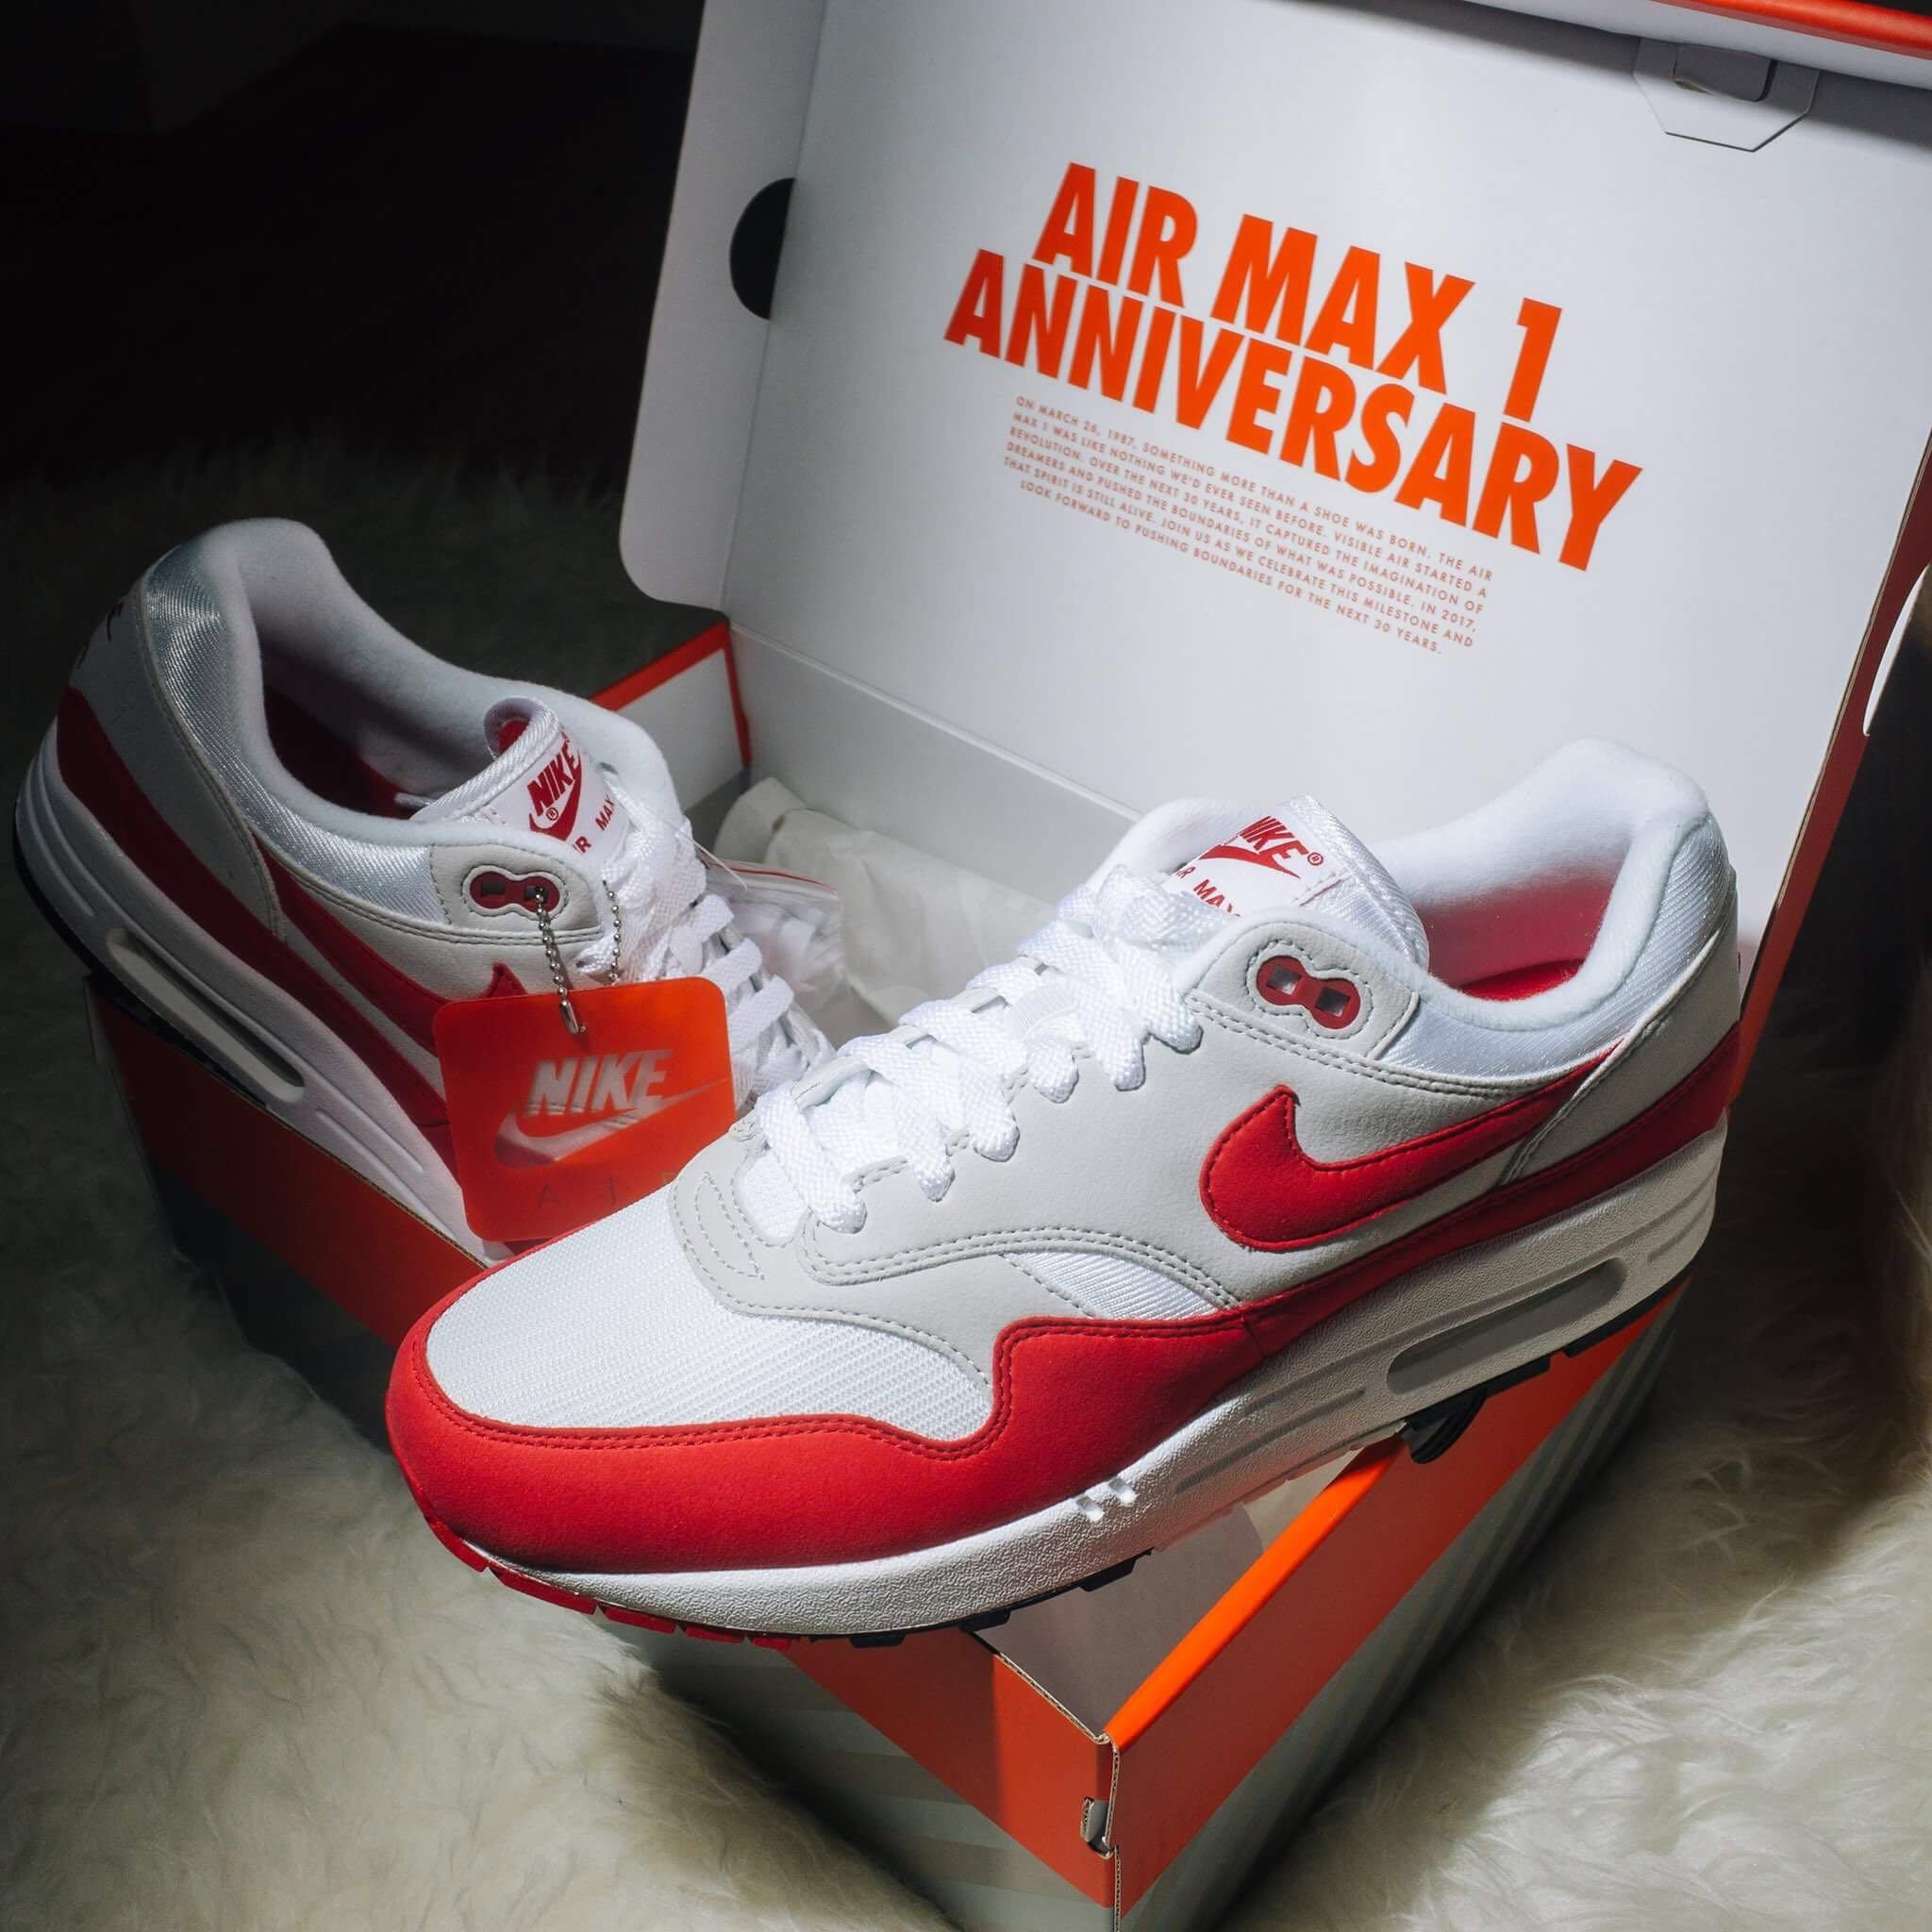 official photos d44c7 3f351 uk8 Nike Airmax 1 OG Red, Men's Fashion, Footwear, Sneakers ...